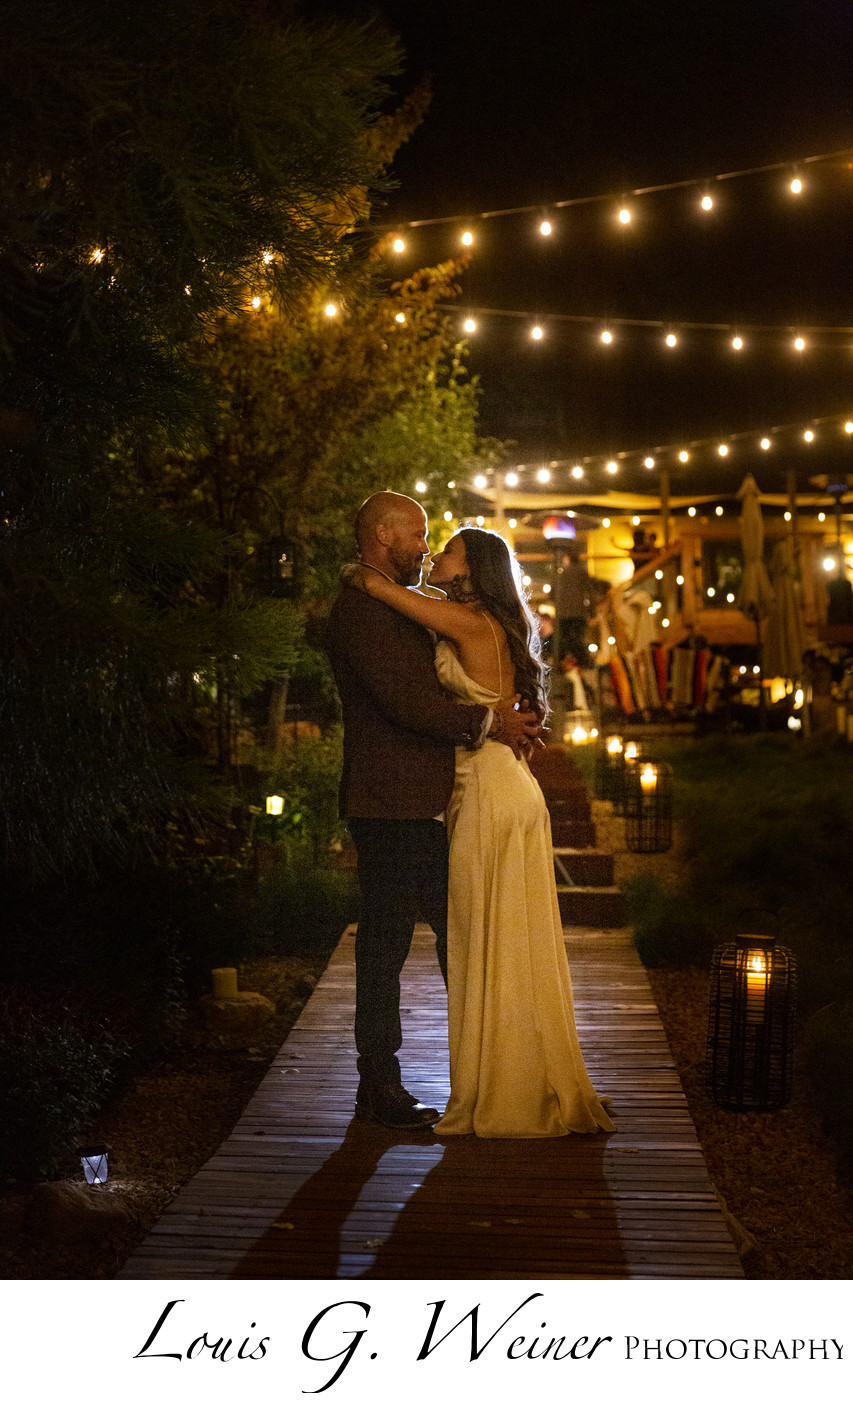 Intimate wedding moment at night, romance and love